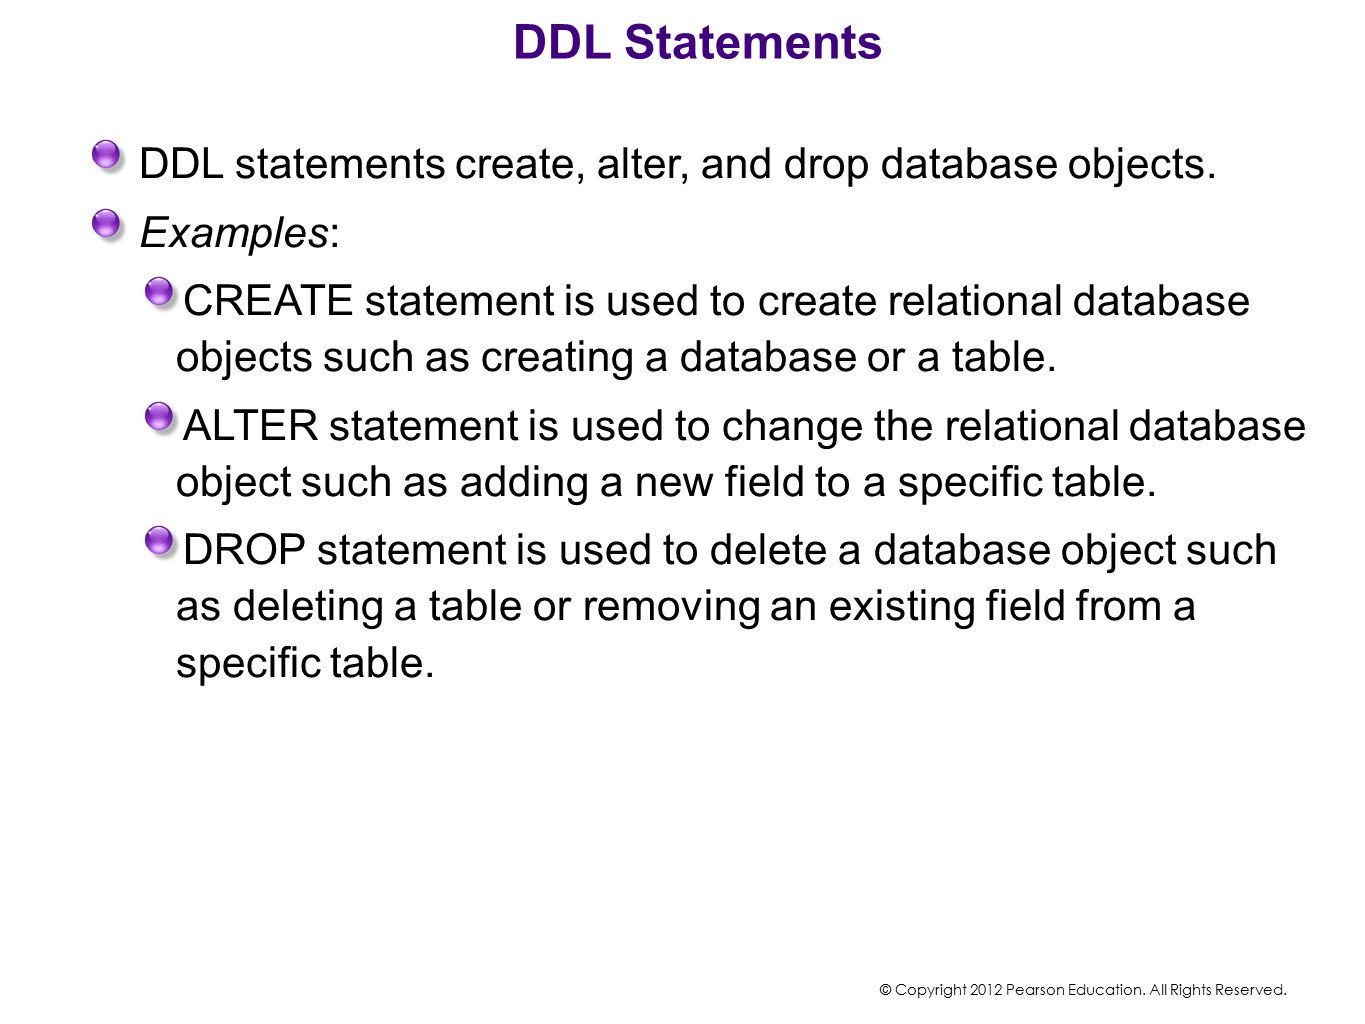 DDL Statements DDL statements create, alter, and drop database objects. Examples: